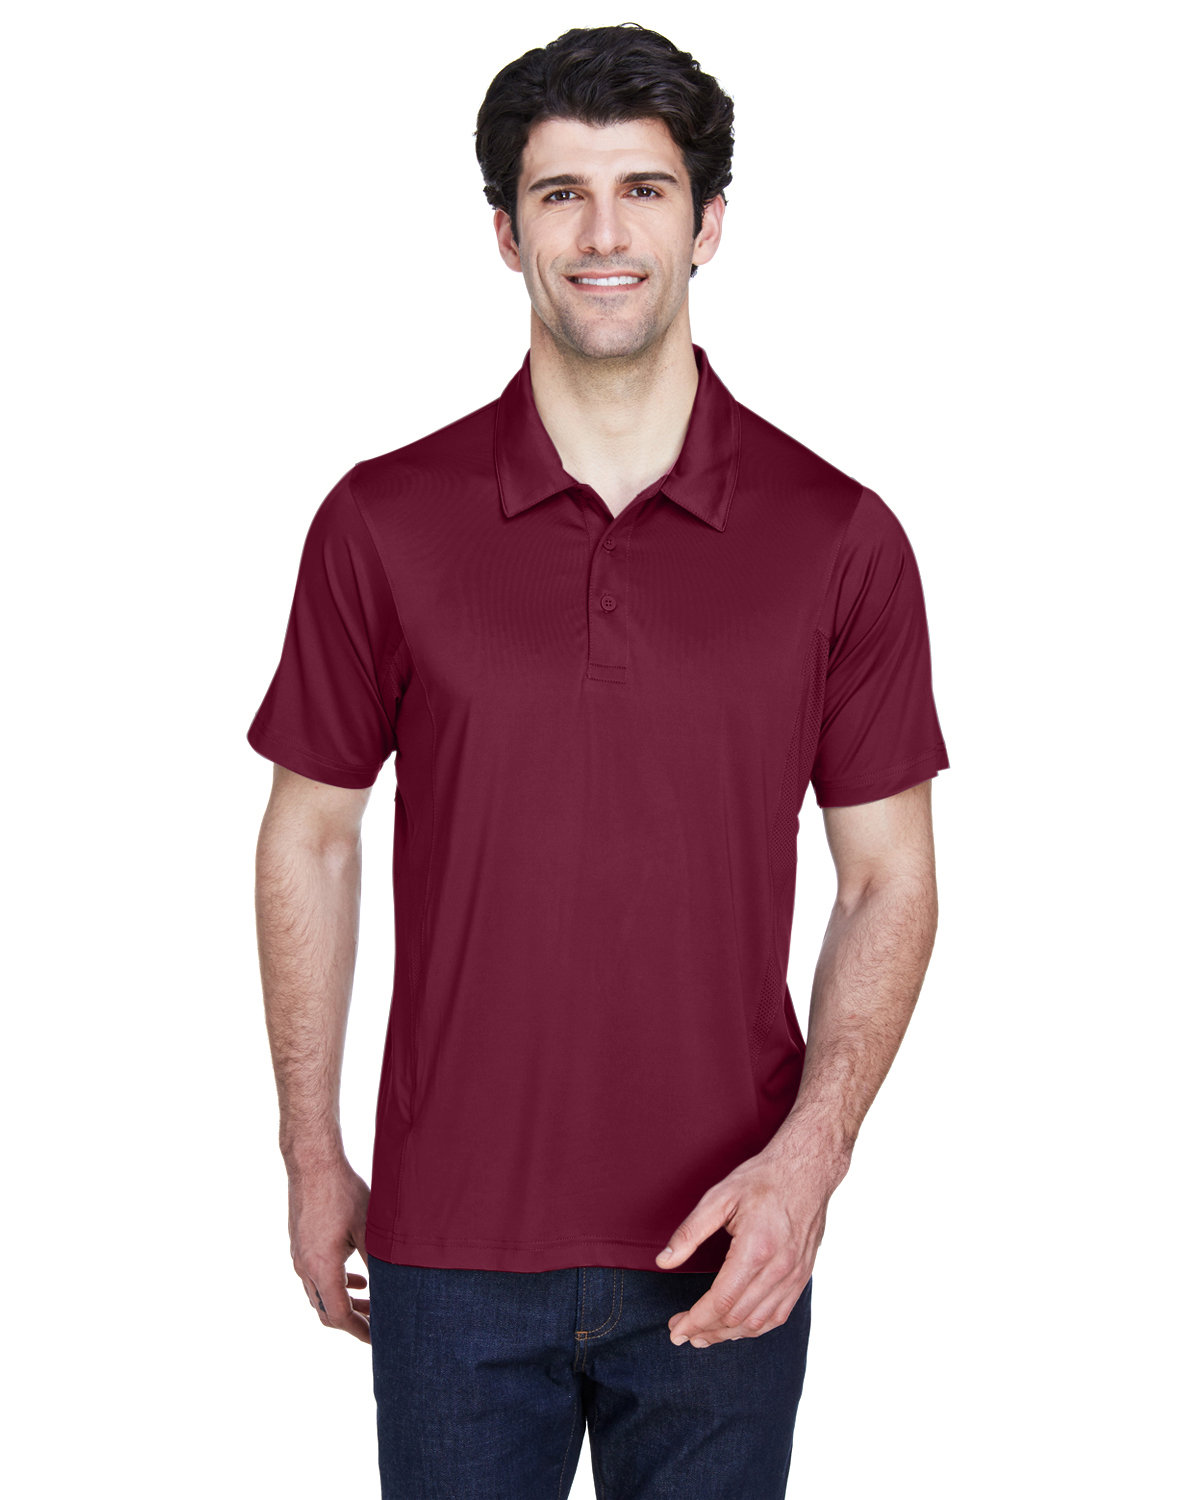 Team 365 Men's Charger Performance Polo SPORT MAROON